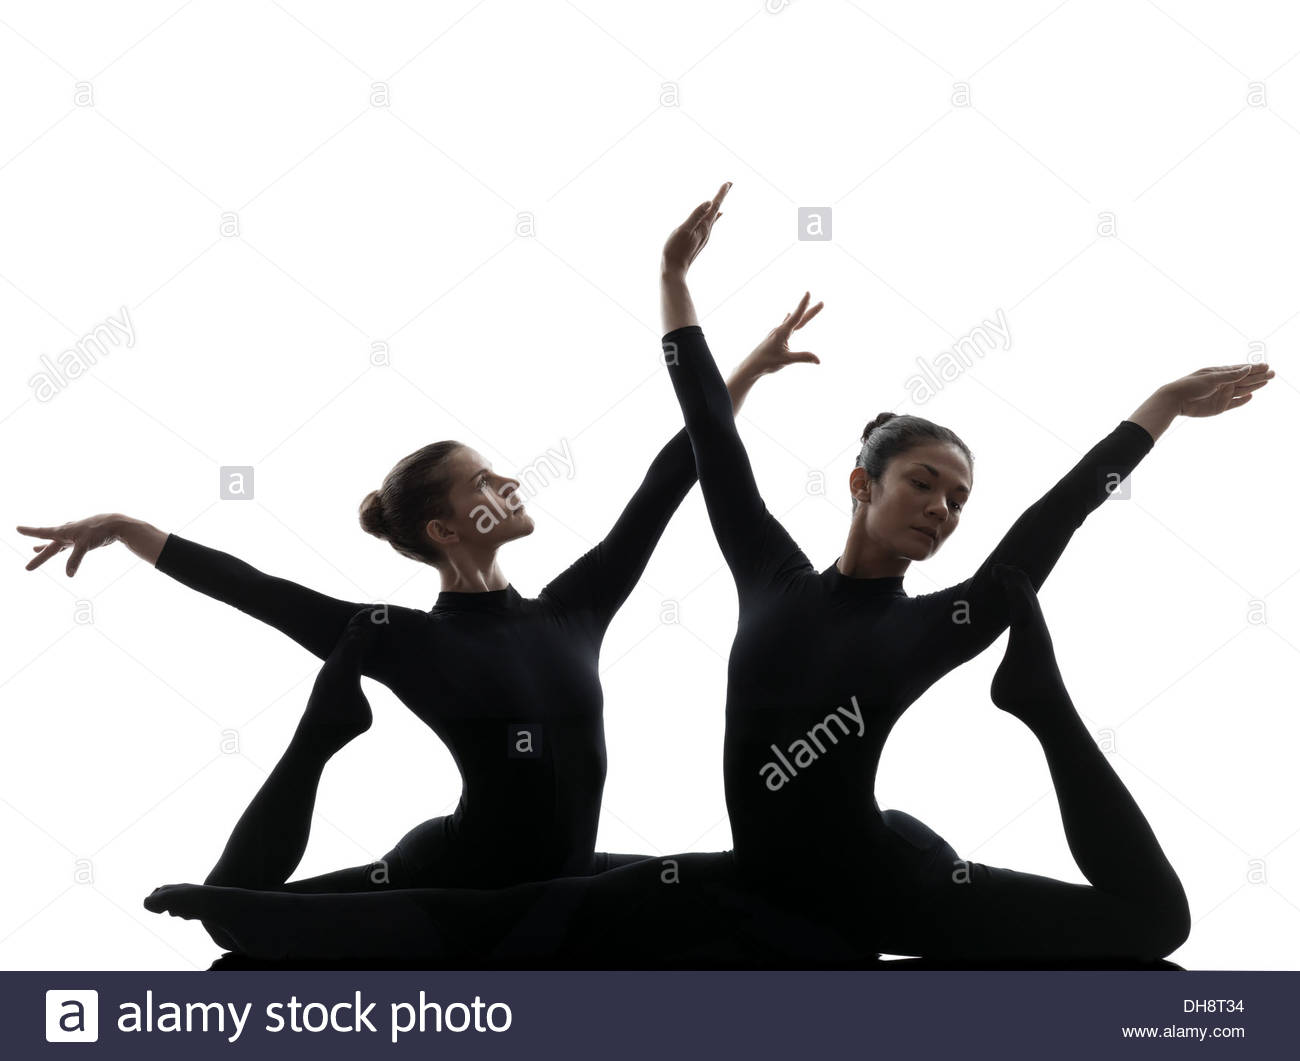 1300x1061 Two Women Contortionist Practicing Gymnastic Yoga In Silhouette